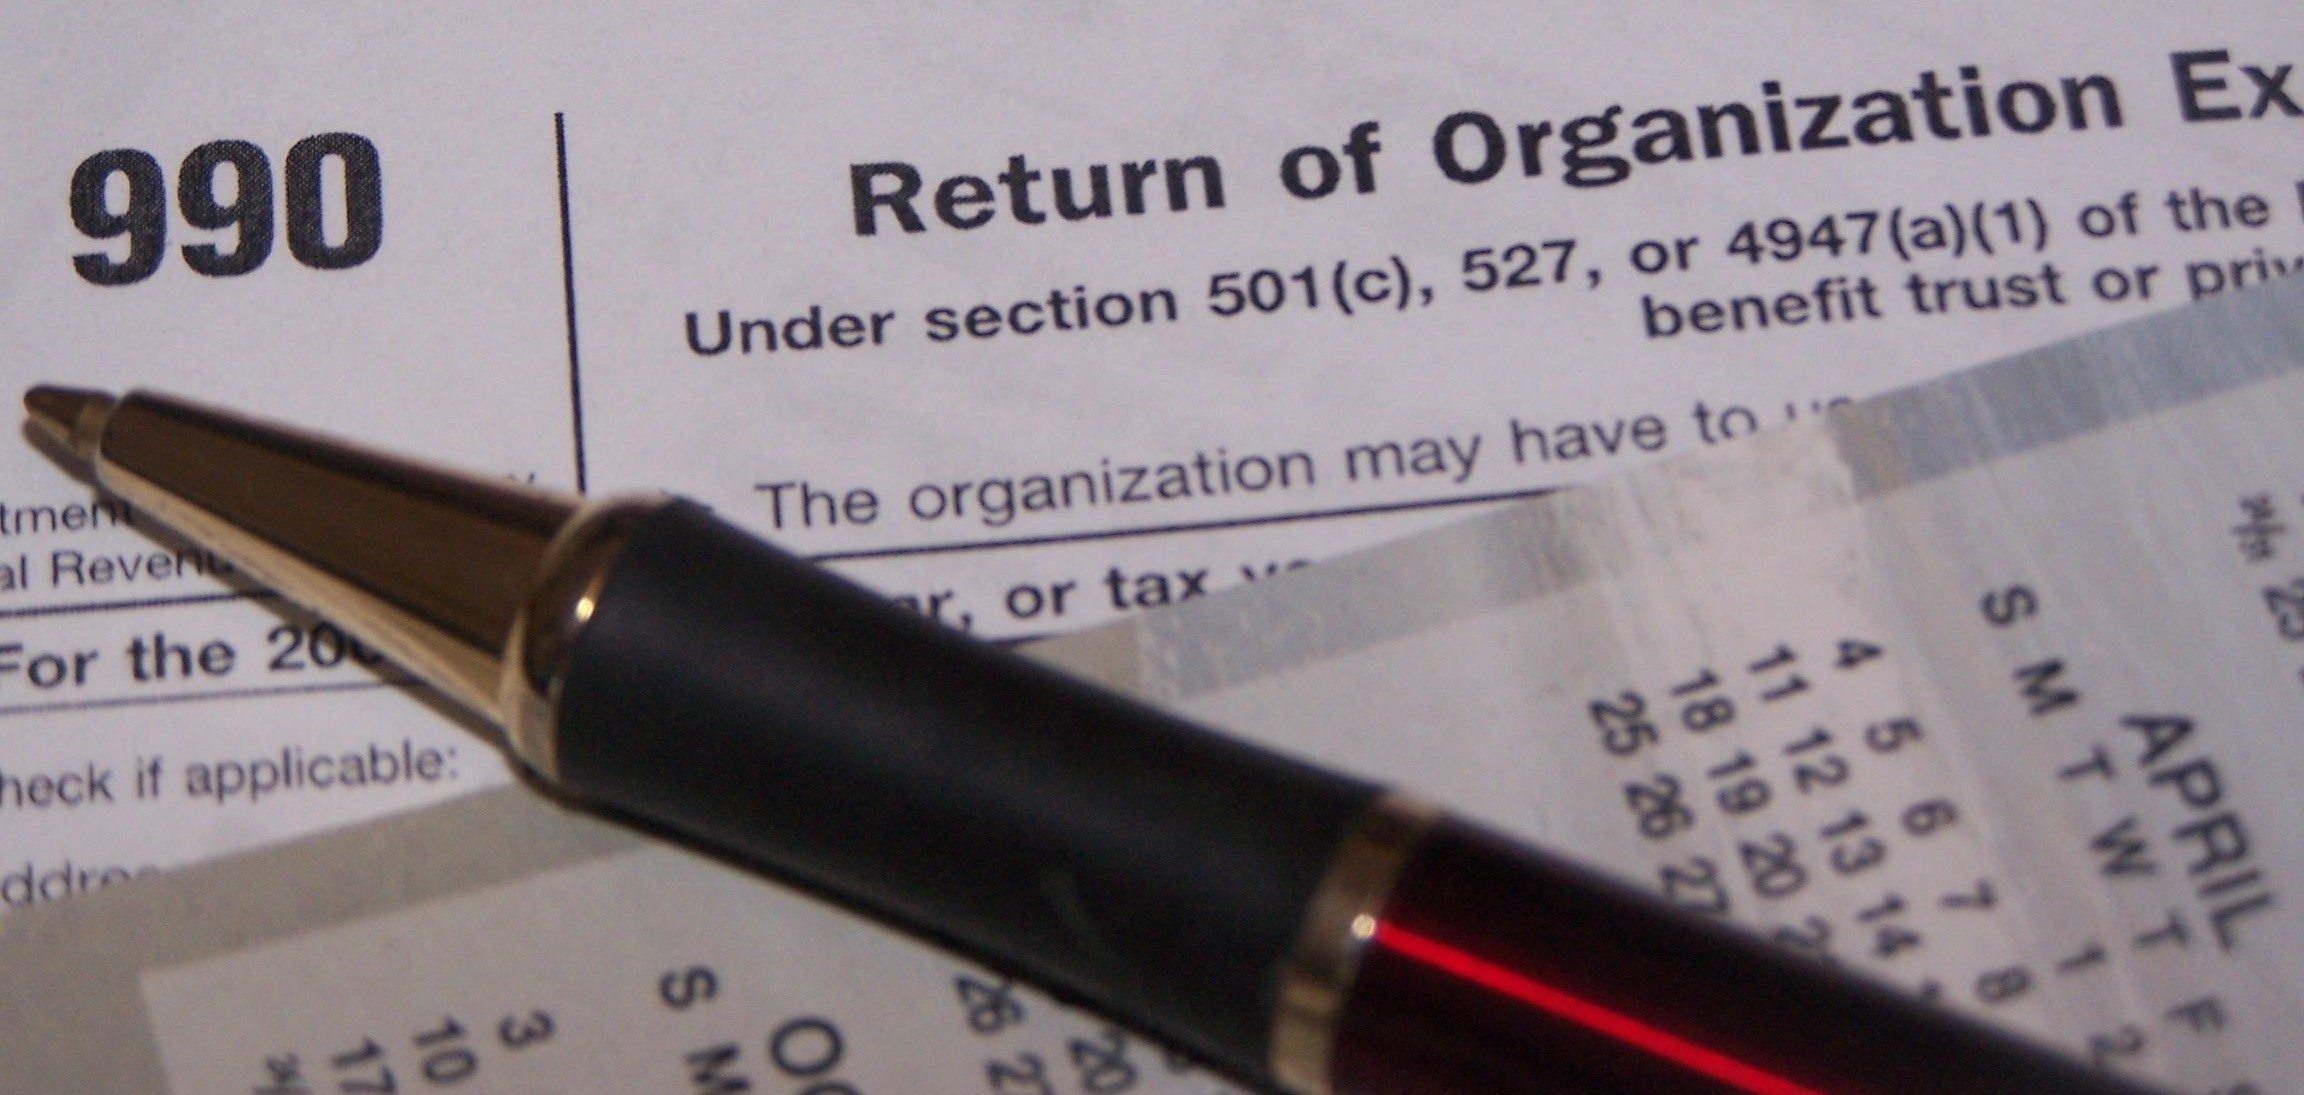 What Is IRS Form 990?